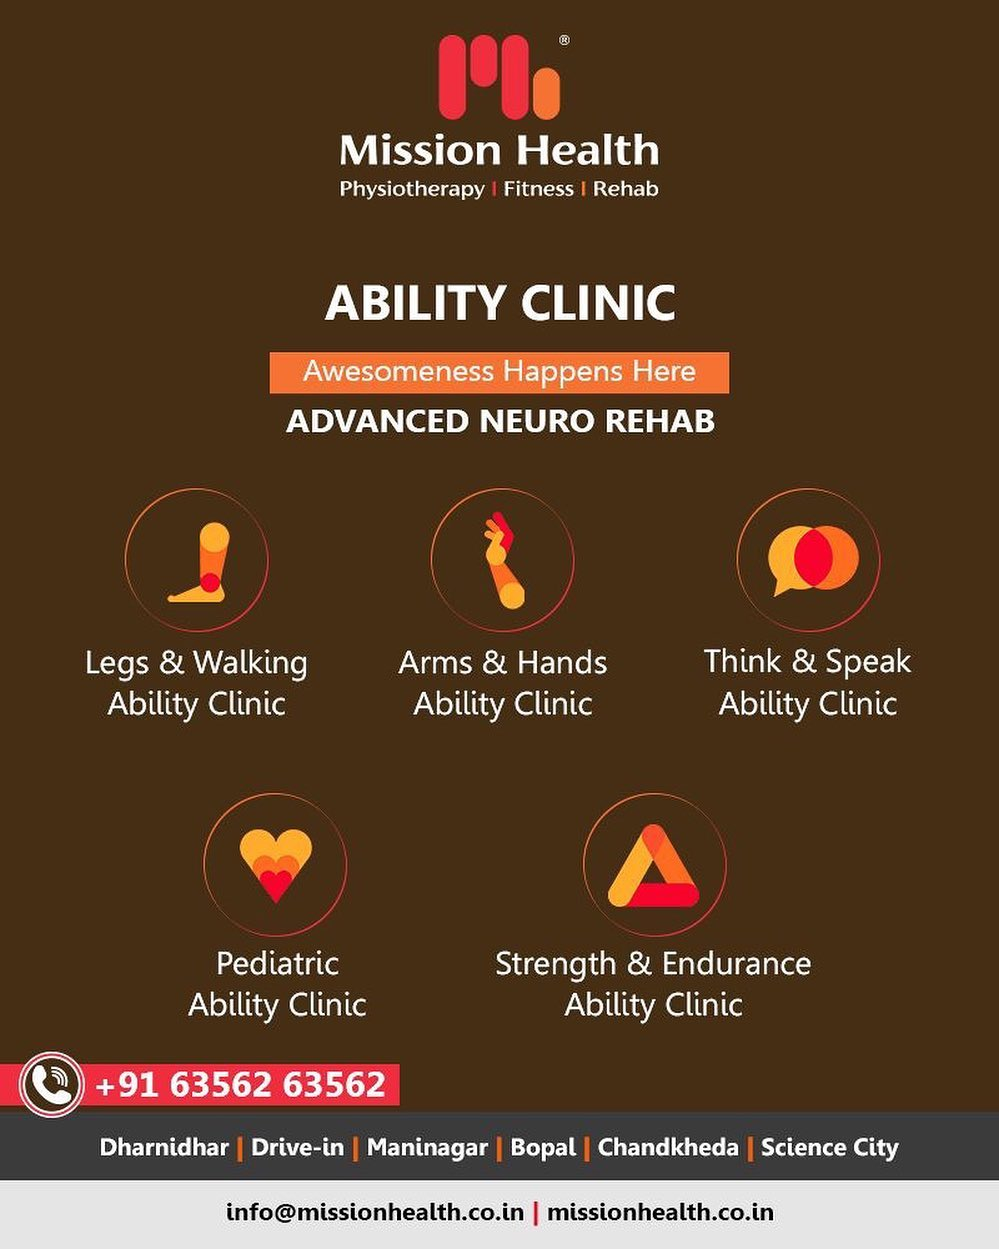 Early mobility and verticalization is the key to successful recovery for patients suffering from #TraumaticBrainInjury, #Stroke, #SpinalCordInjury, #Neuropathies, and various other neurological conditions. Mission Health is India's first of its kind Ability Clinic offering fastest ability enhancement  #MissionHealth #MissionHealthIndia #MovementIsLife #AbilityClinic